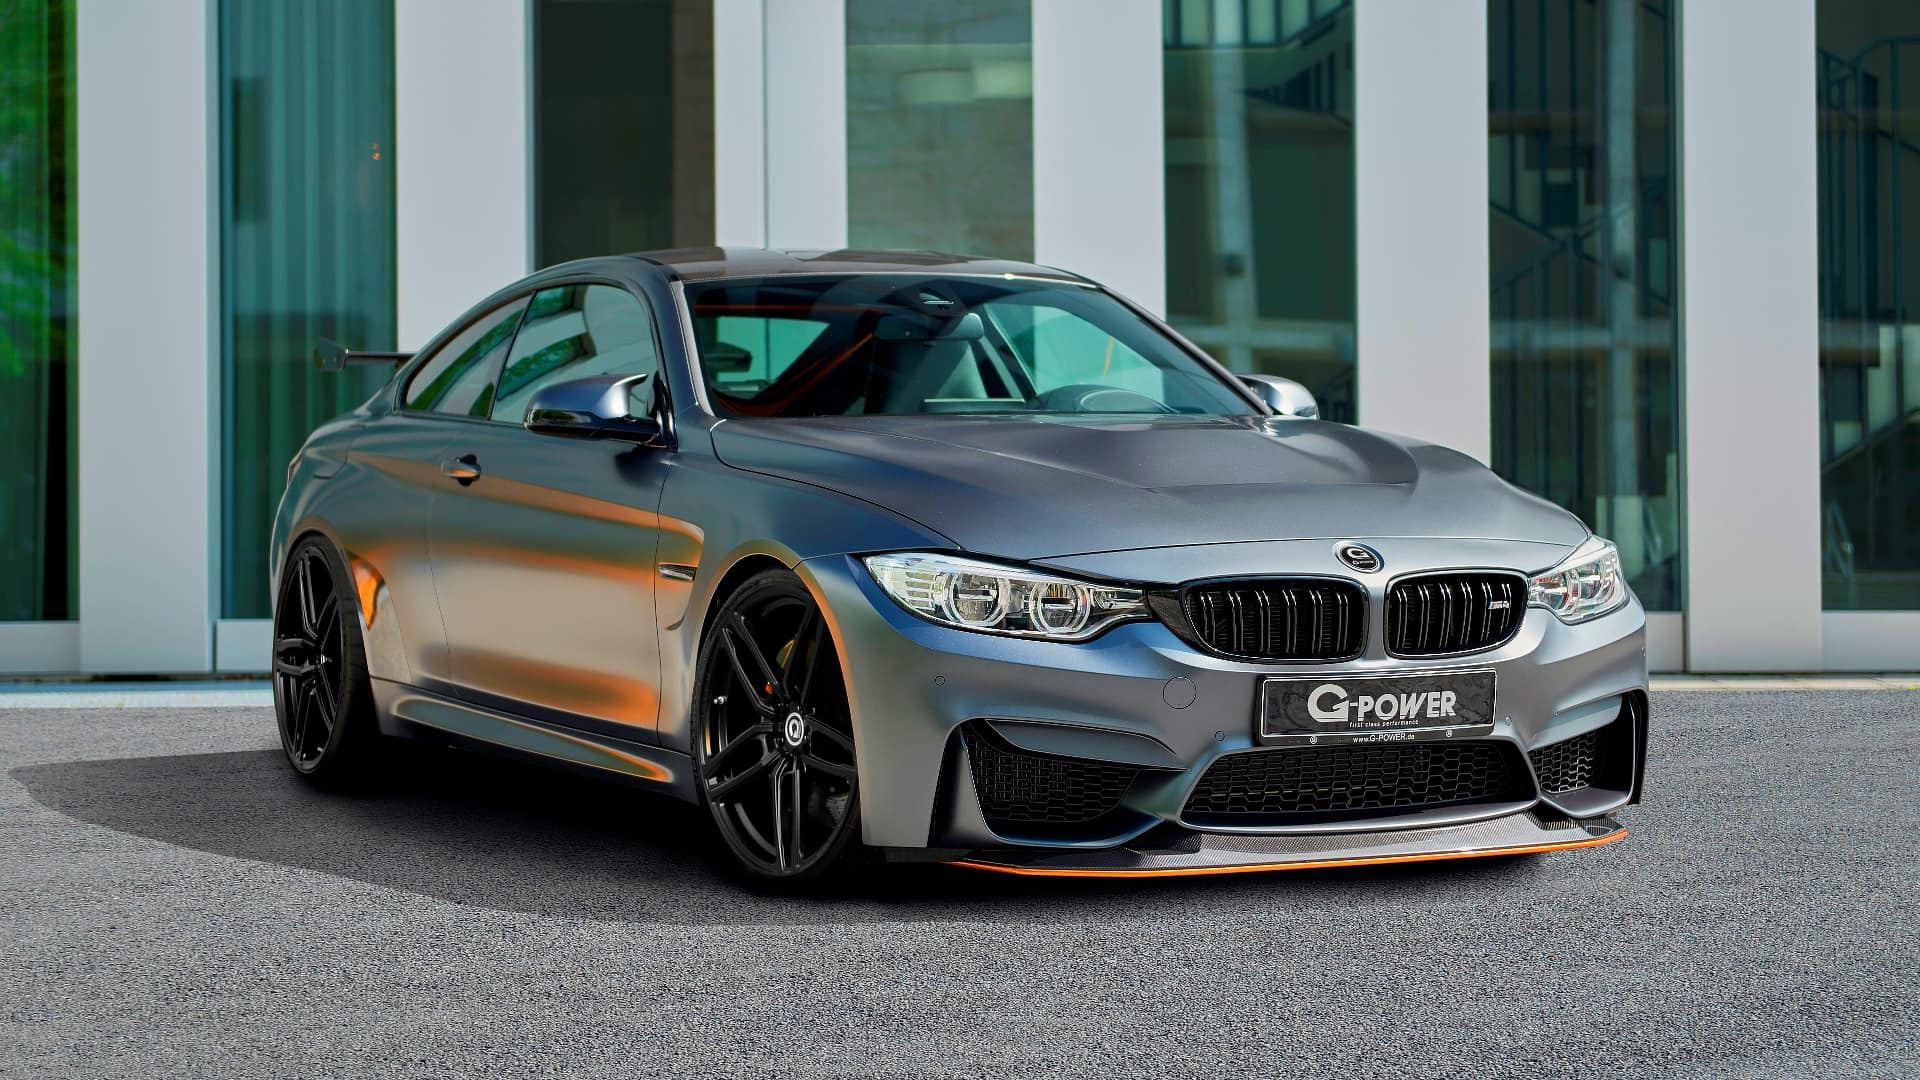 G-Power Delivers An Awesome Ugrade for the BMW M4 GTS